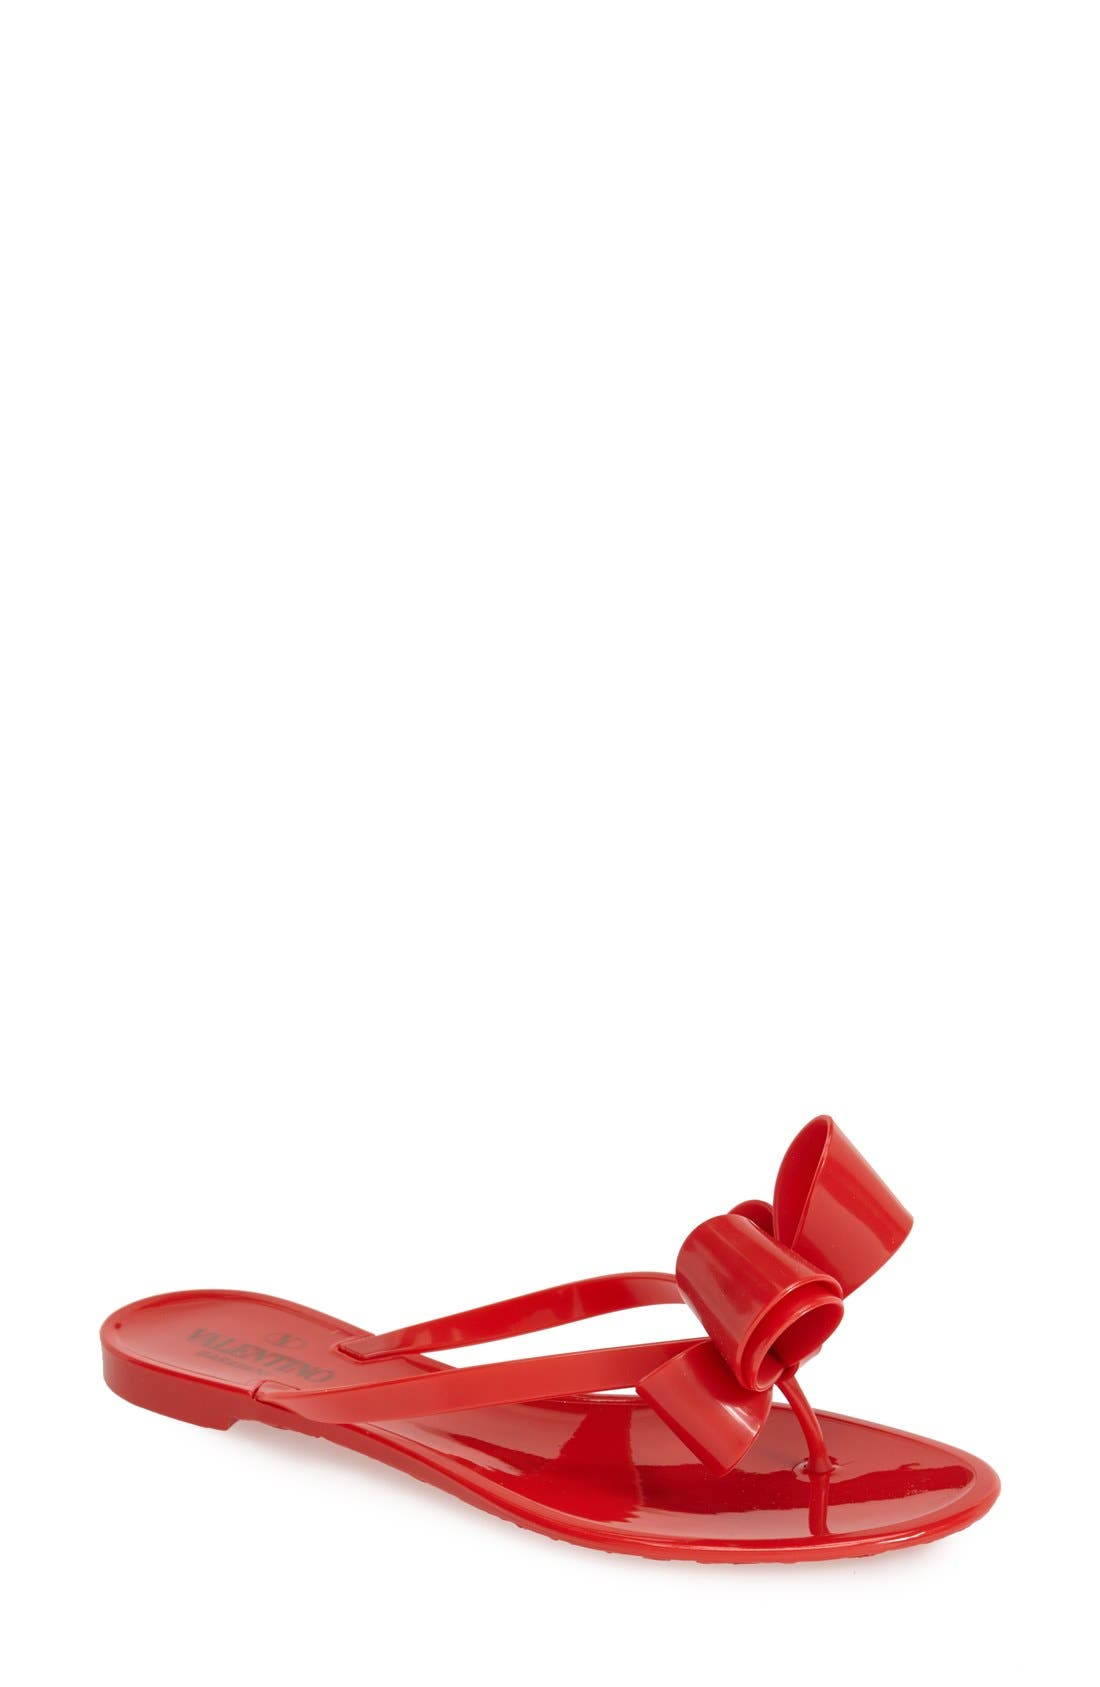 Main Image - Valentino Couture Bow Thong Sandal (Women)